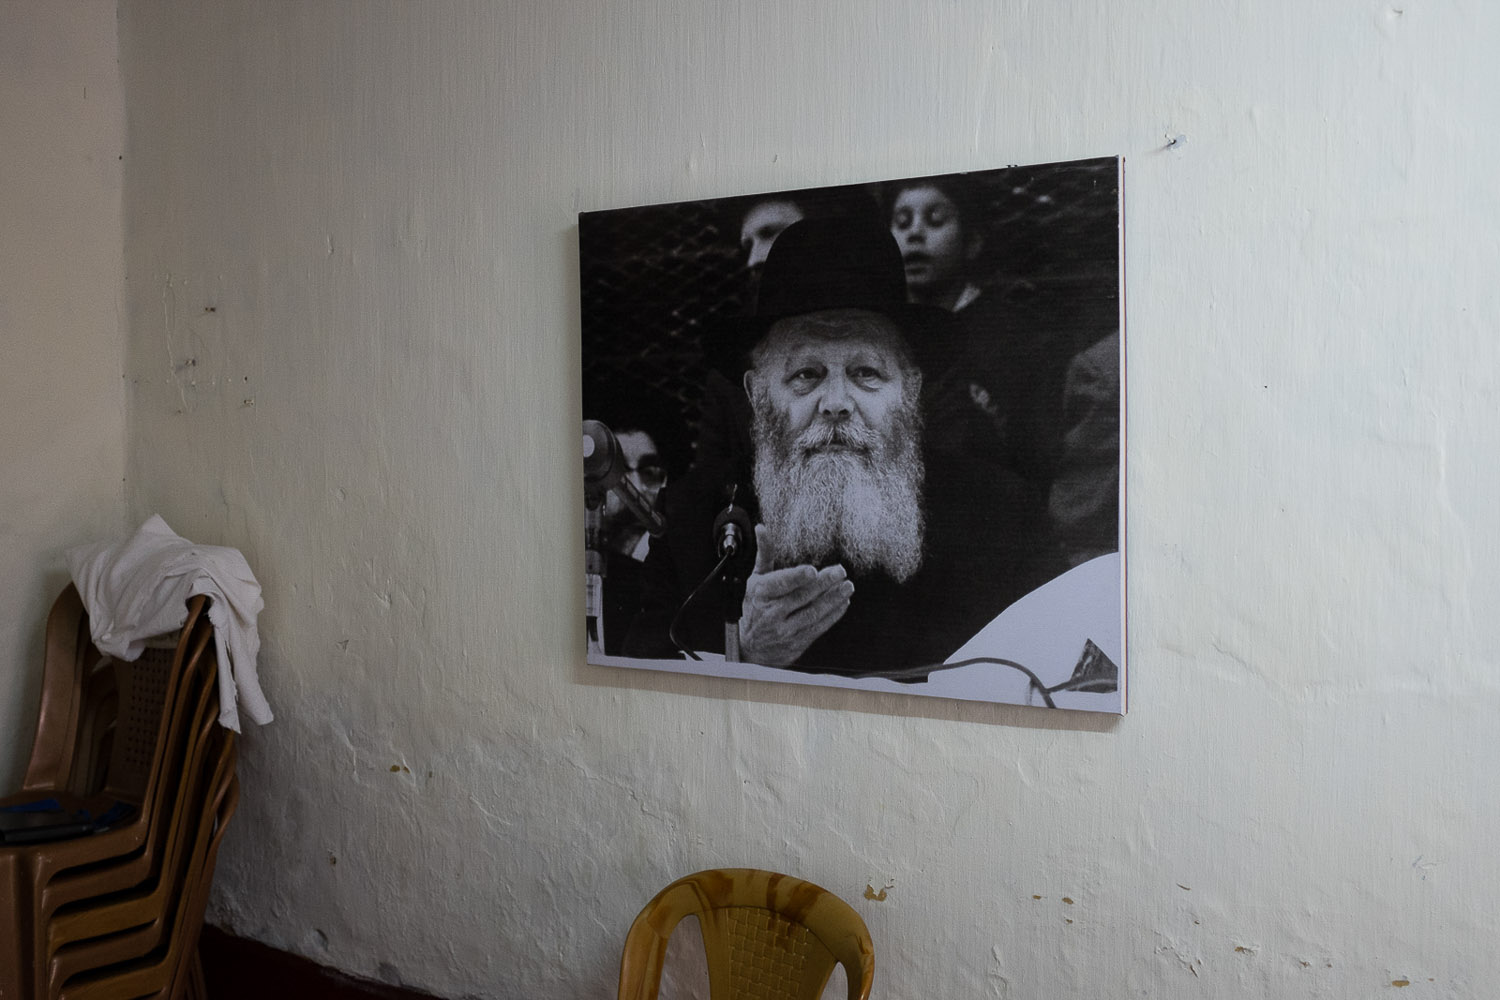 A temporary Chabad house has opened for the High Holidays next door to Sarah's house, to offer services to visitors. They are not sure how many people to expect. Here, the Lubavitch Rebbe (the late leader of the Chabad movement) is pictured.